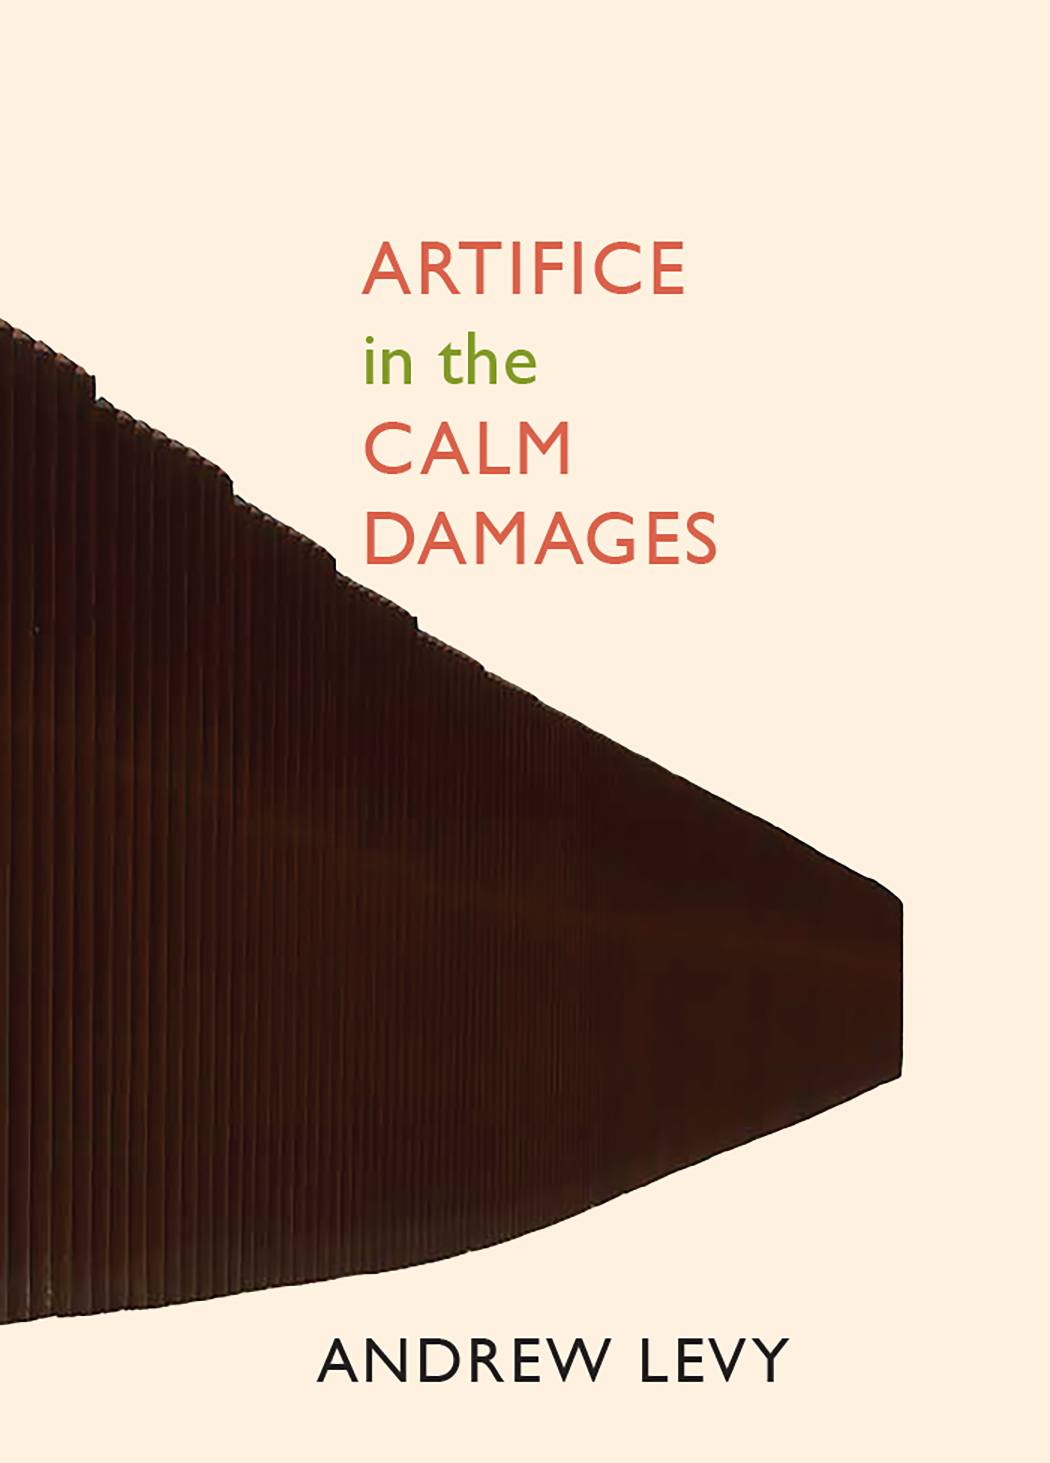 Artifice in the Calm Damages